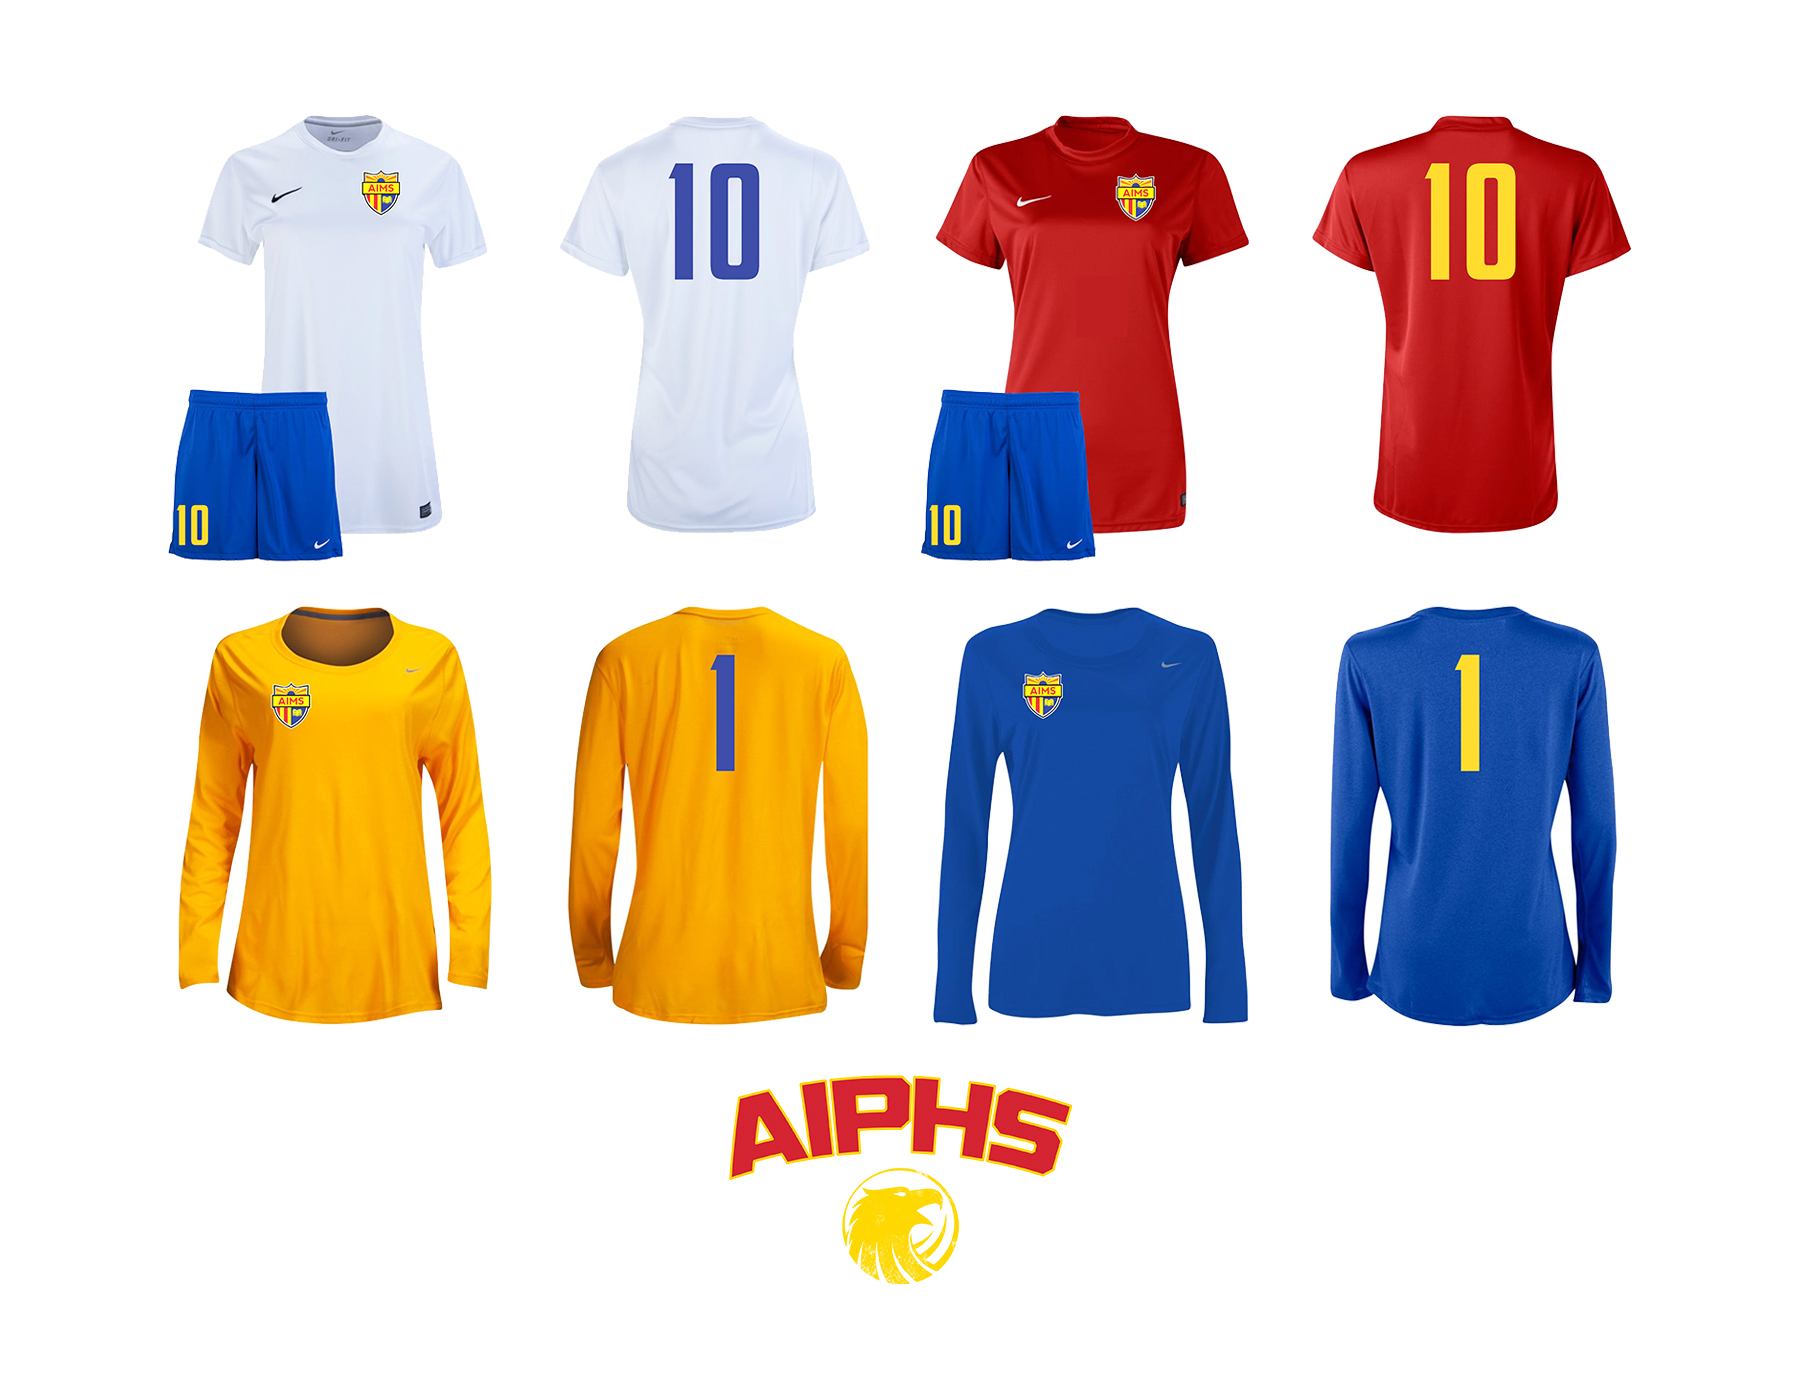 Lady Eagles Soccer Kits    The Lady Eagles home soccer kit tops are white with royal blue numbers, while the away soccer kit features a red top with gold numbers. To alternate from the Golden Eagles uniforms, the goalkeeper has the option to wear a gold uniform with royal blue numbers or a royal blue uniform with gold numbers. White socks are required to be worn with the home kits, while red socks are worn with away uniforms. When combined with the royal blue shorts, the away kit combination stands out as perhaps the best uniform color combination of all the AIMS sports teams.